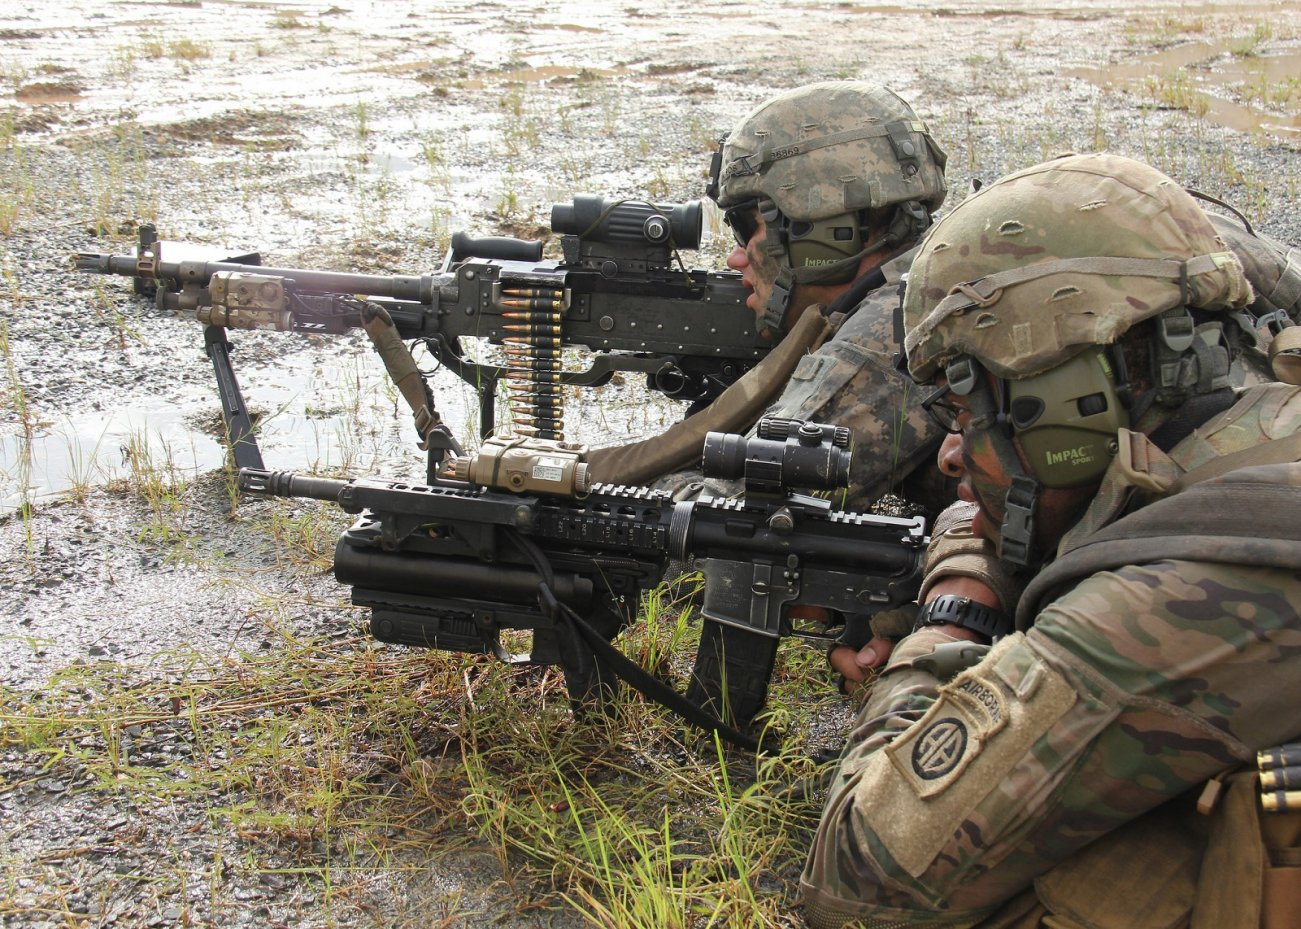 Army Dream: A Rifle That Can Fire Up to 5 Rounds at One Time